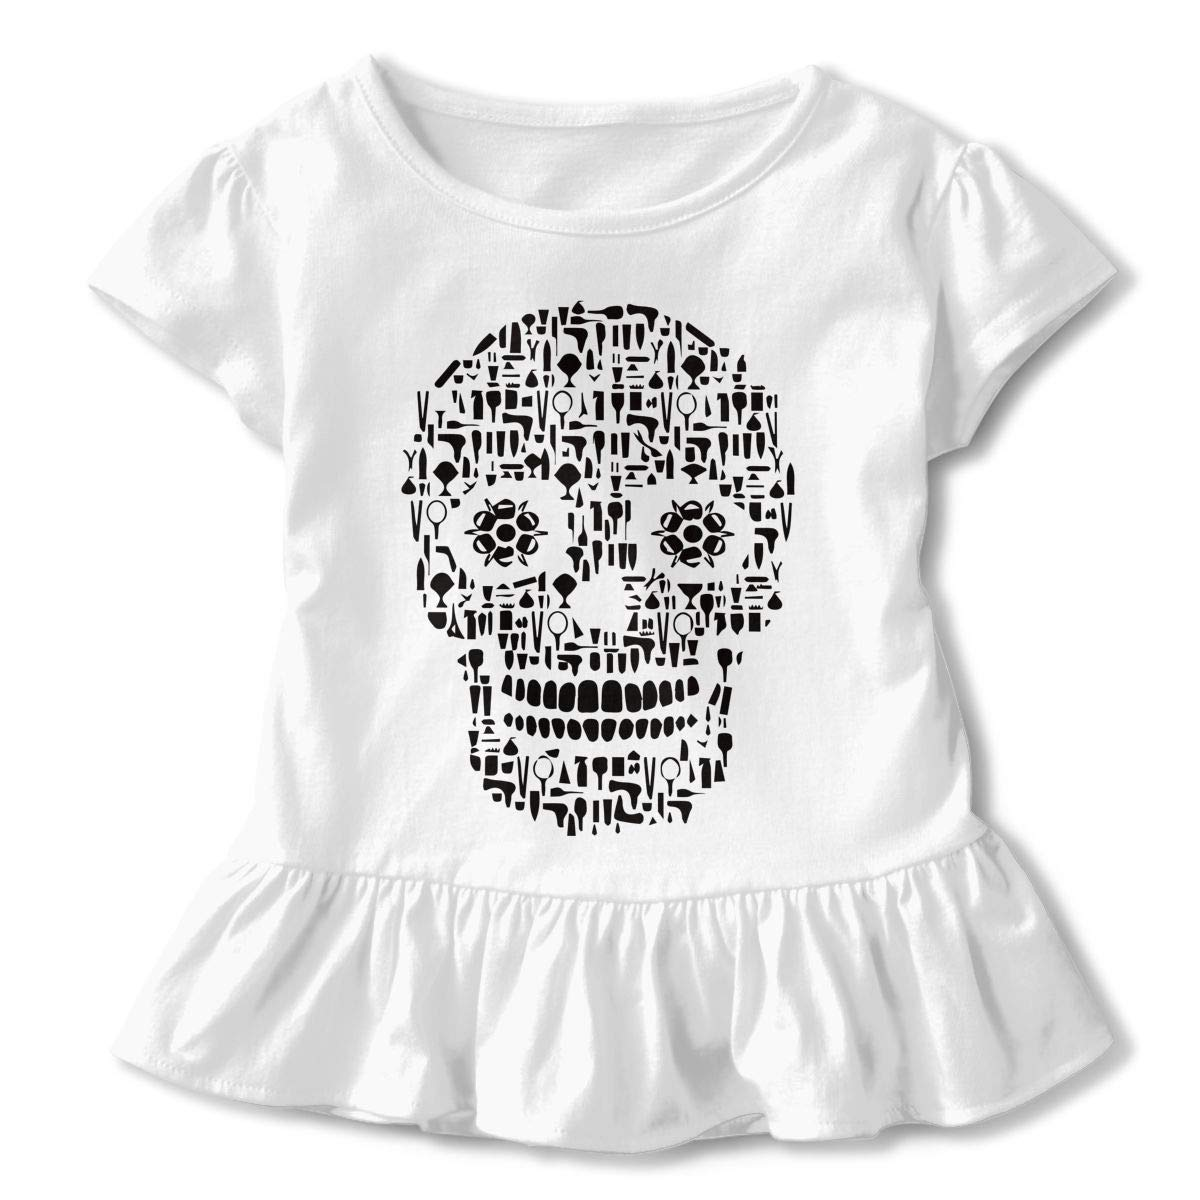 Hair Stylist Sugar Skull Hairstylist Toddler//Infant Girls Short Sleeve T-Shirts Ruffles Shirt Tee for 2-6T